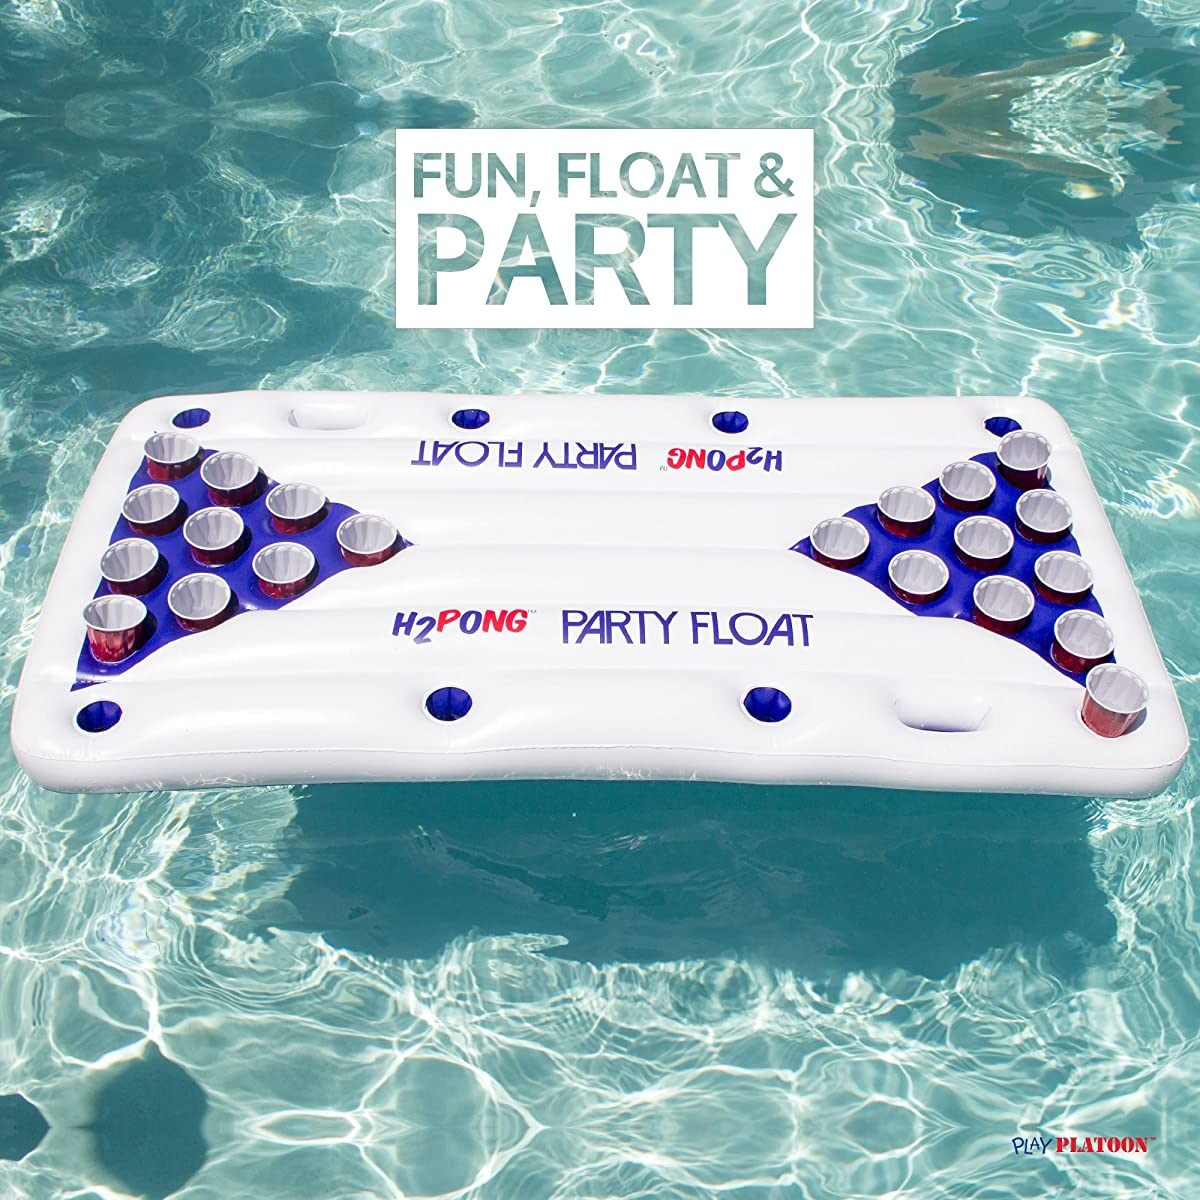 Play Platoon H2PONG Inflatable Beer Pong Table Float, Includes 5 Ping Pong Balls - Floating Pool Party Game Raft and Lounge